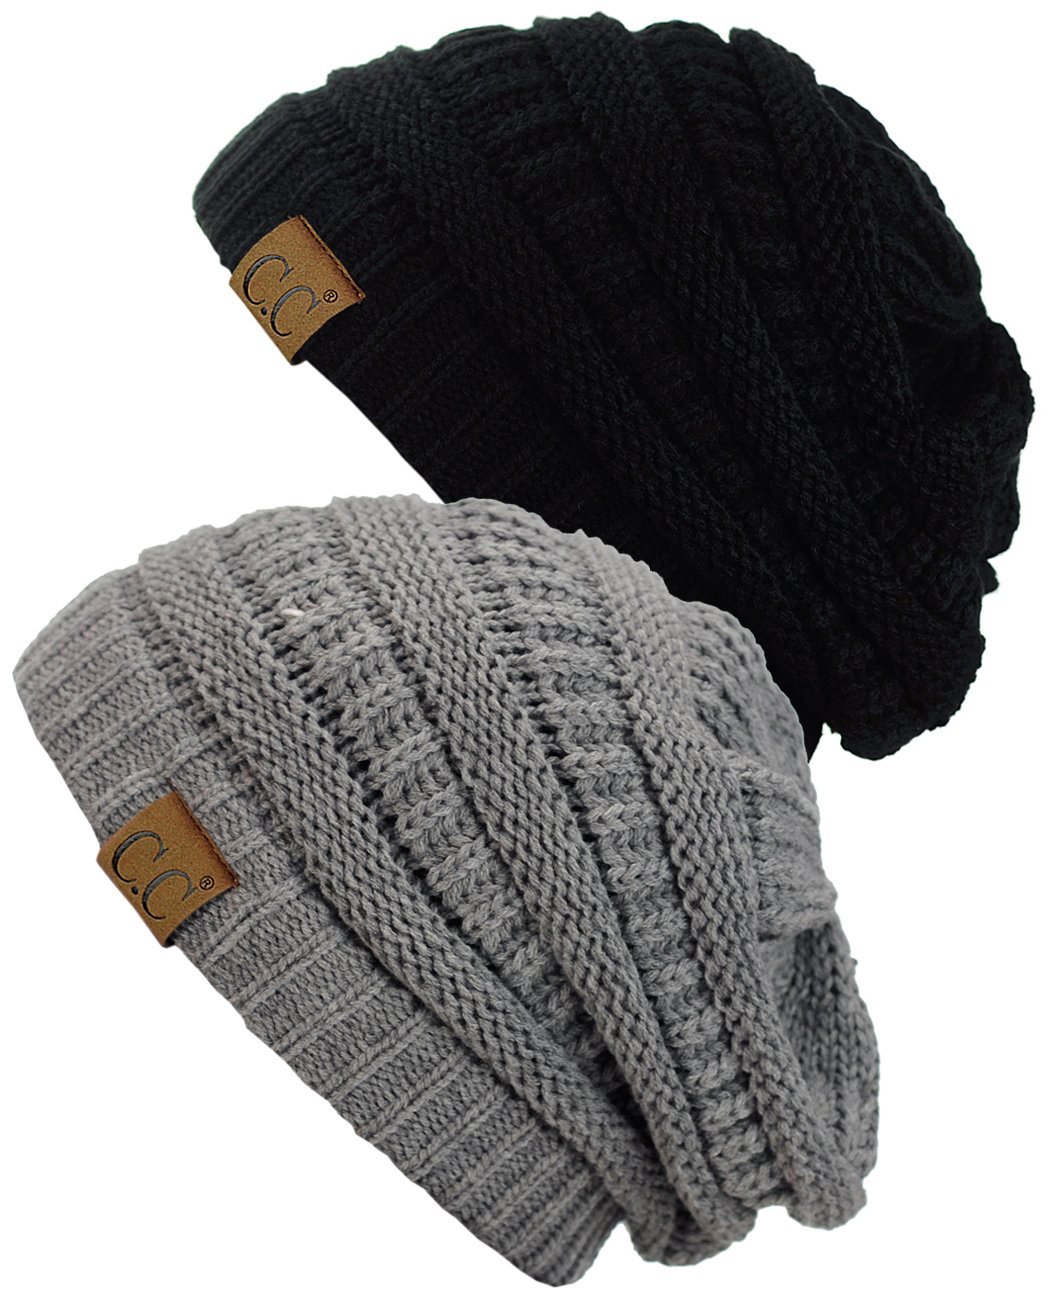 C.C Trendy Warm Chunky Soft Stretch Cable Knit Beanie Skully, 2 Pack 2 Pack Beige/Dark Olive HAT20A SET-BG/NEW OLV